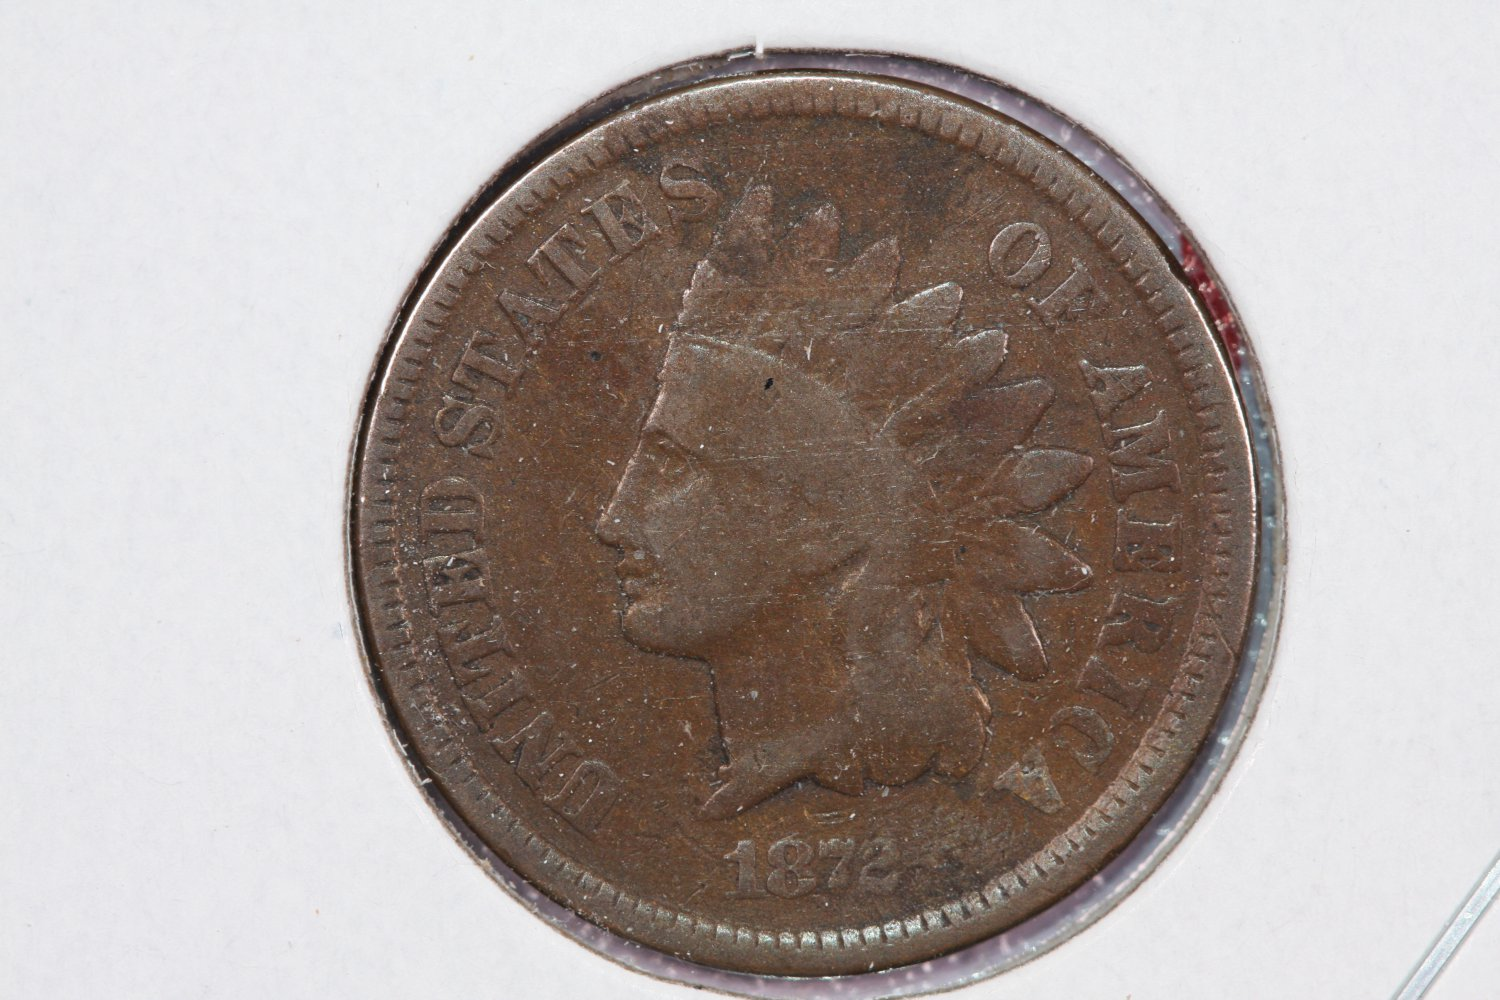 1872 1C Indian Head Cents, Good Circulated Coin. Store Sale#2526